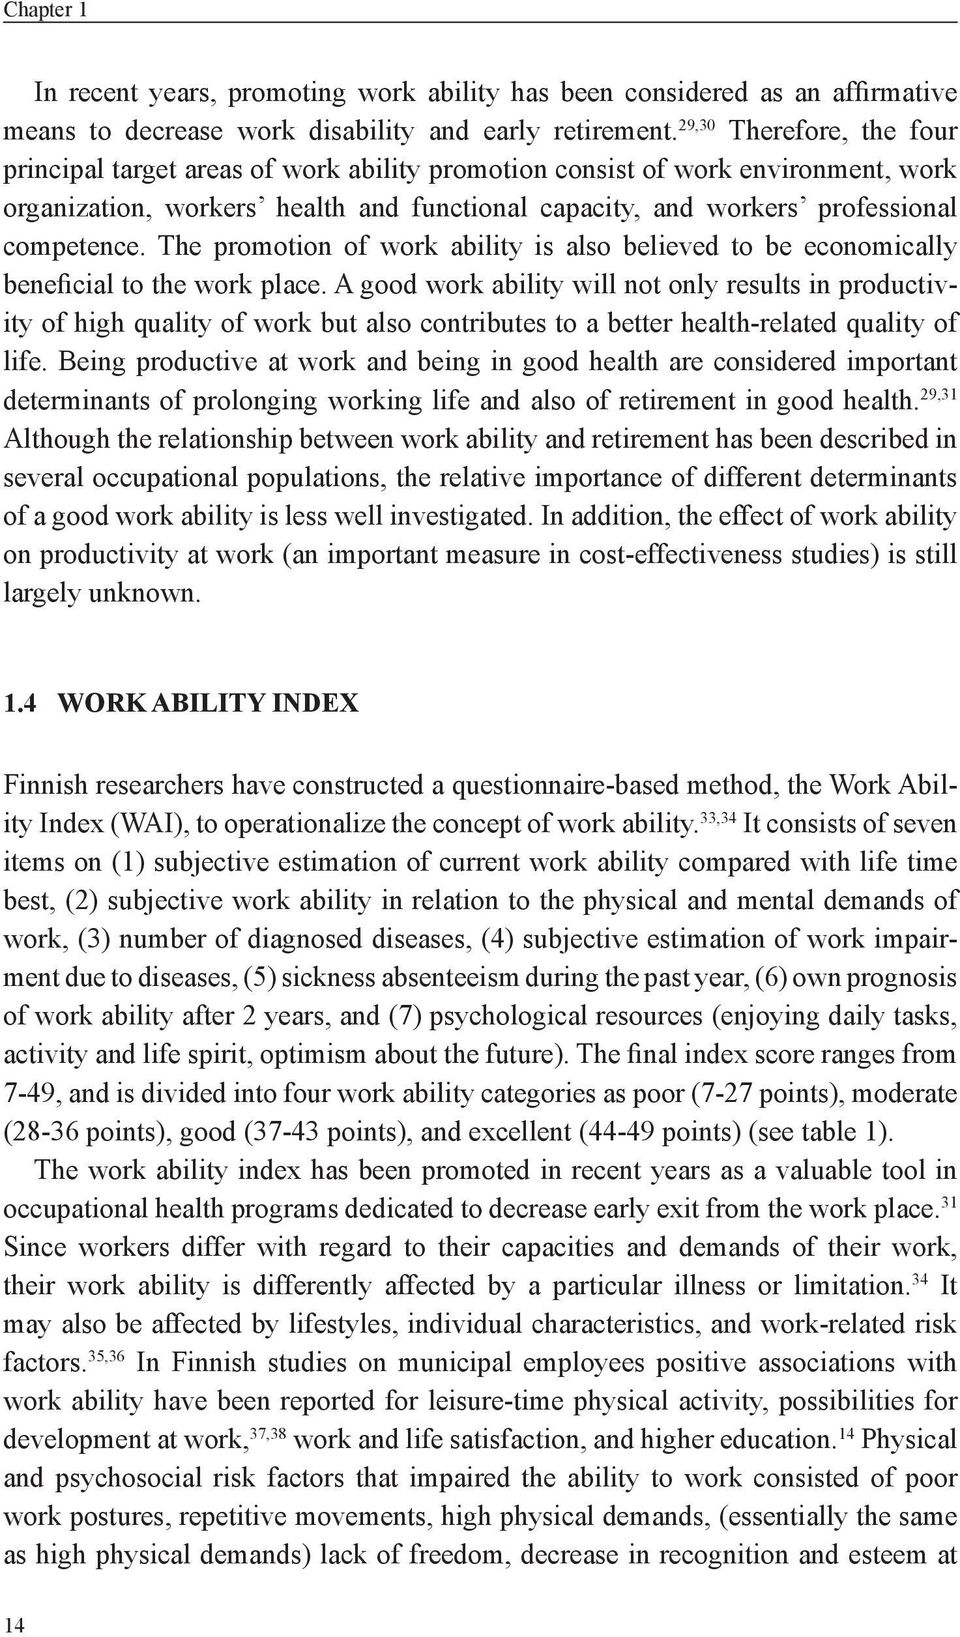 The promotion of work ability is also believed to be economically beneficial to the work place.